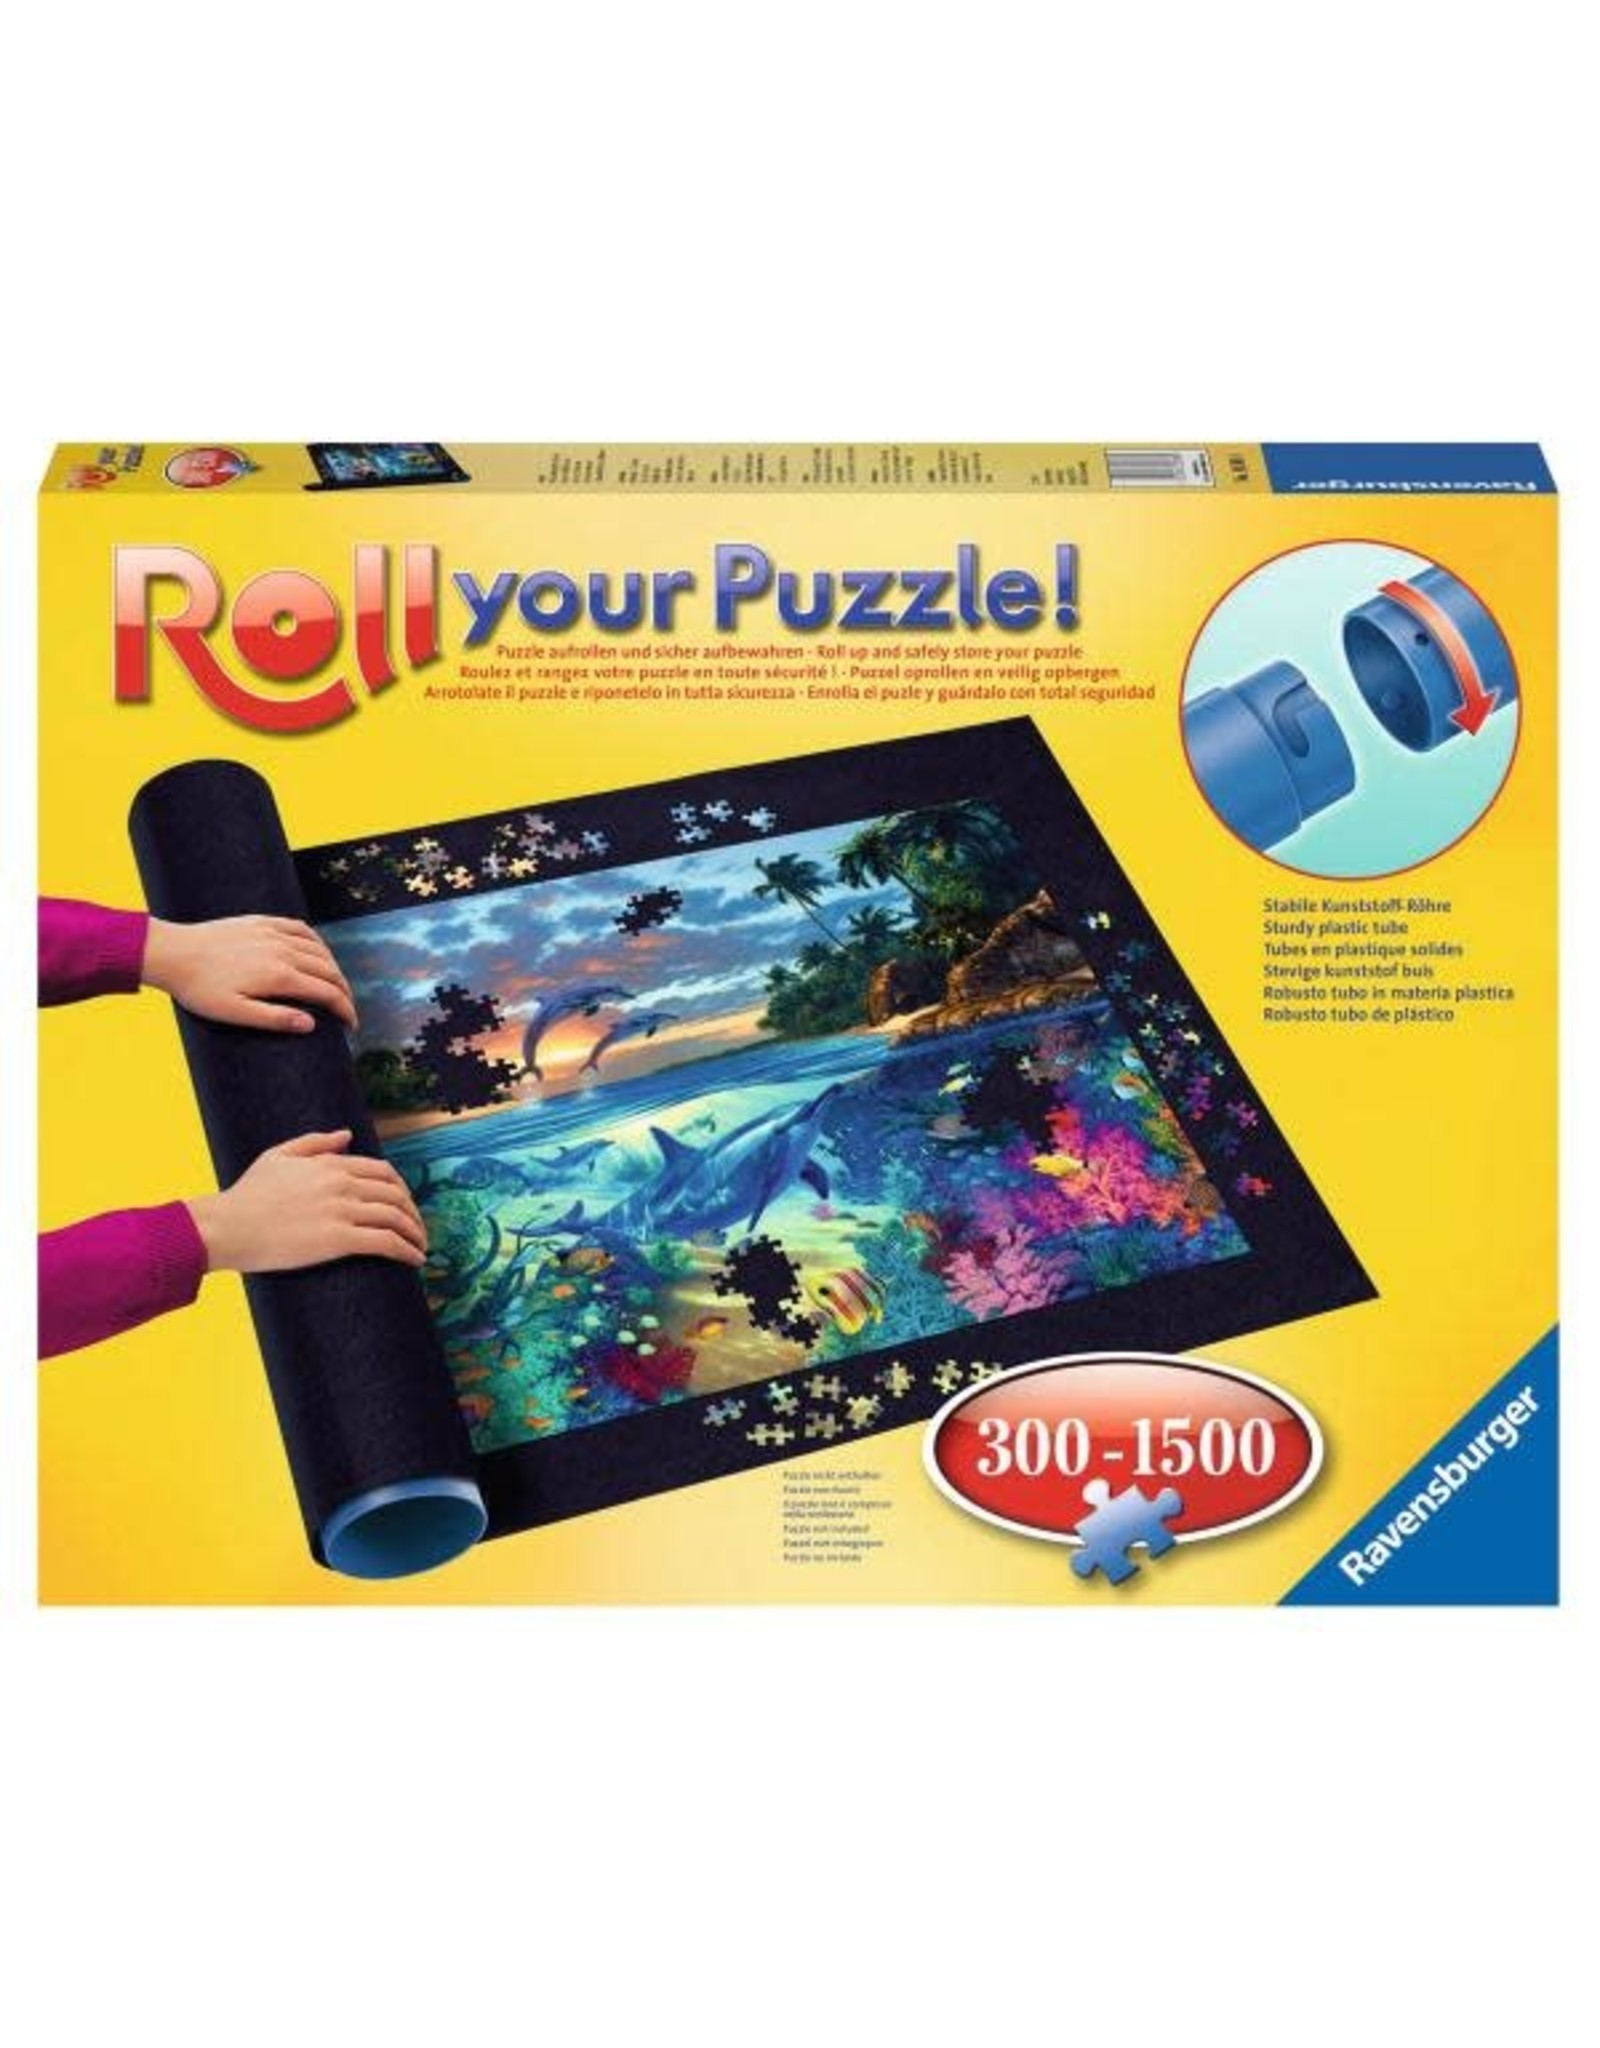 Roll Your Puzzle 300 - 1500pc